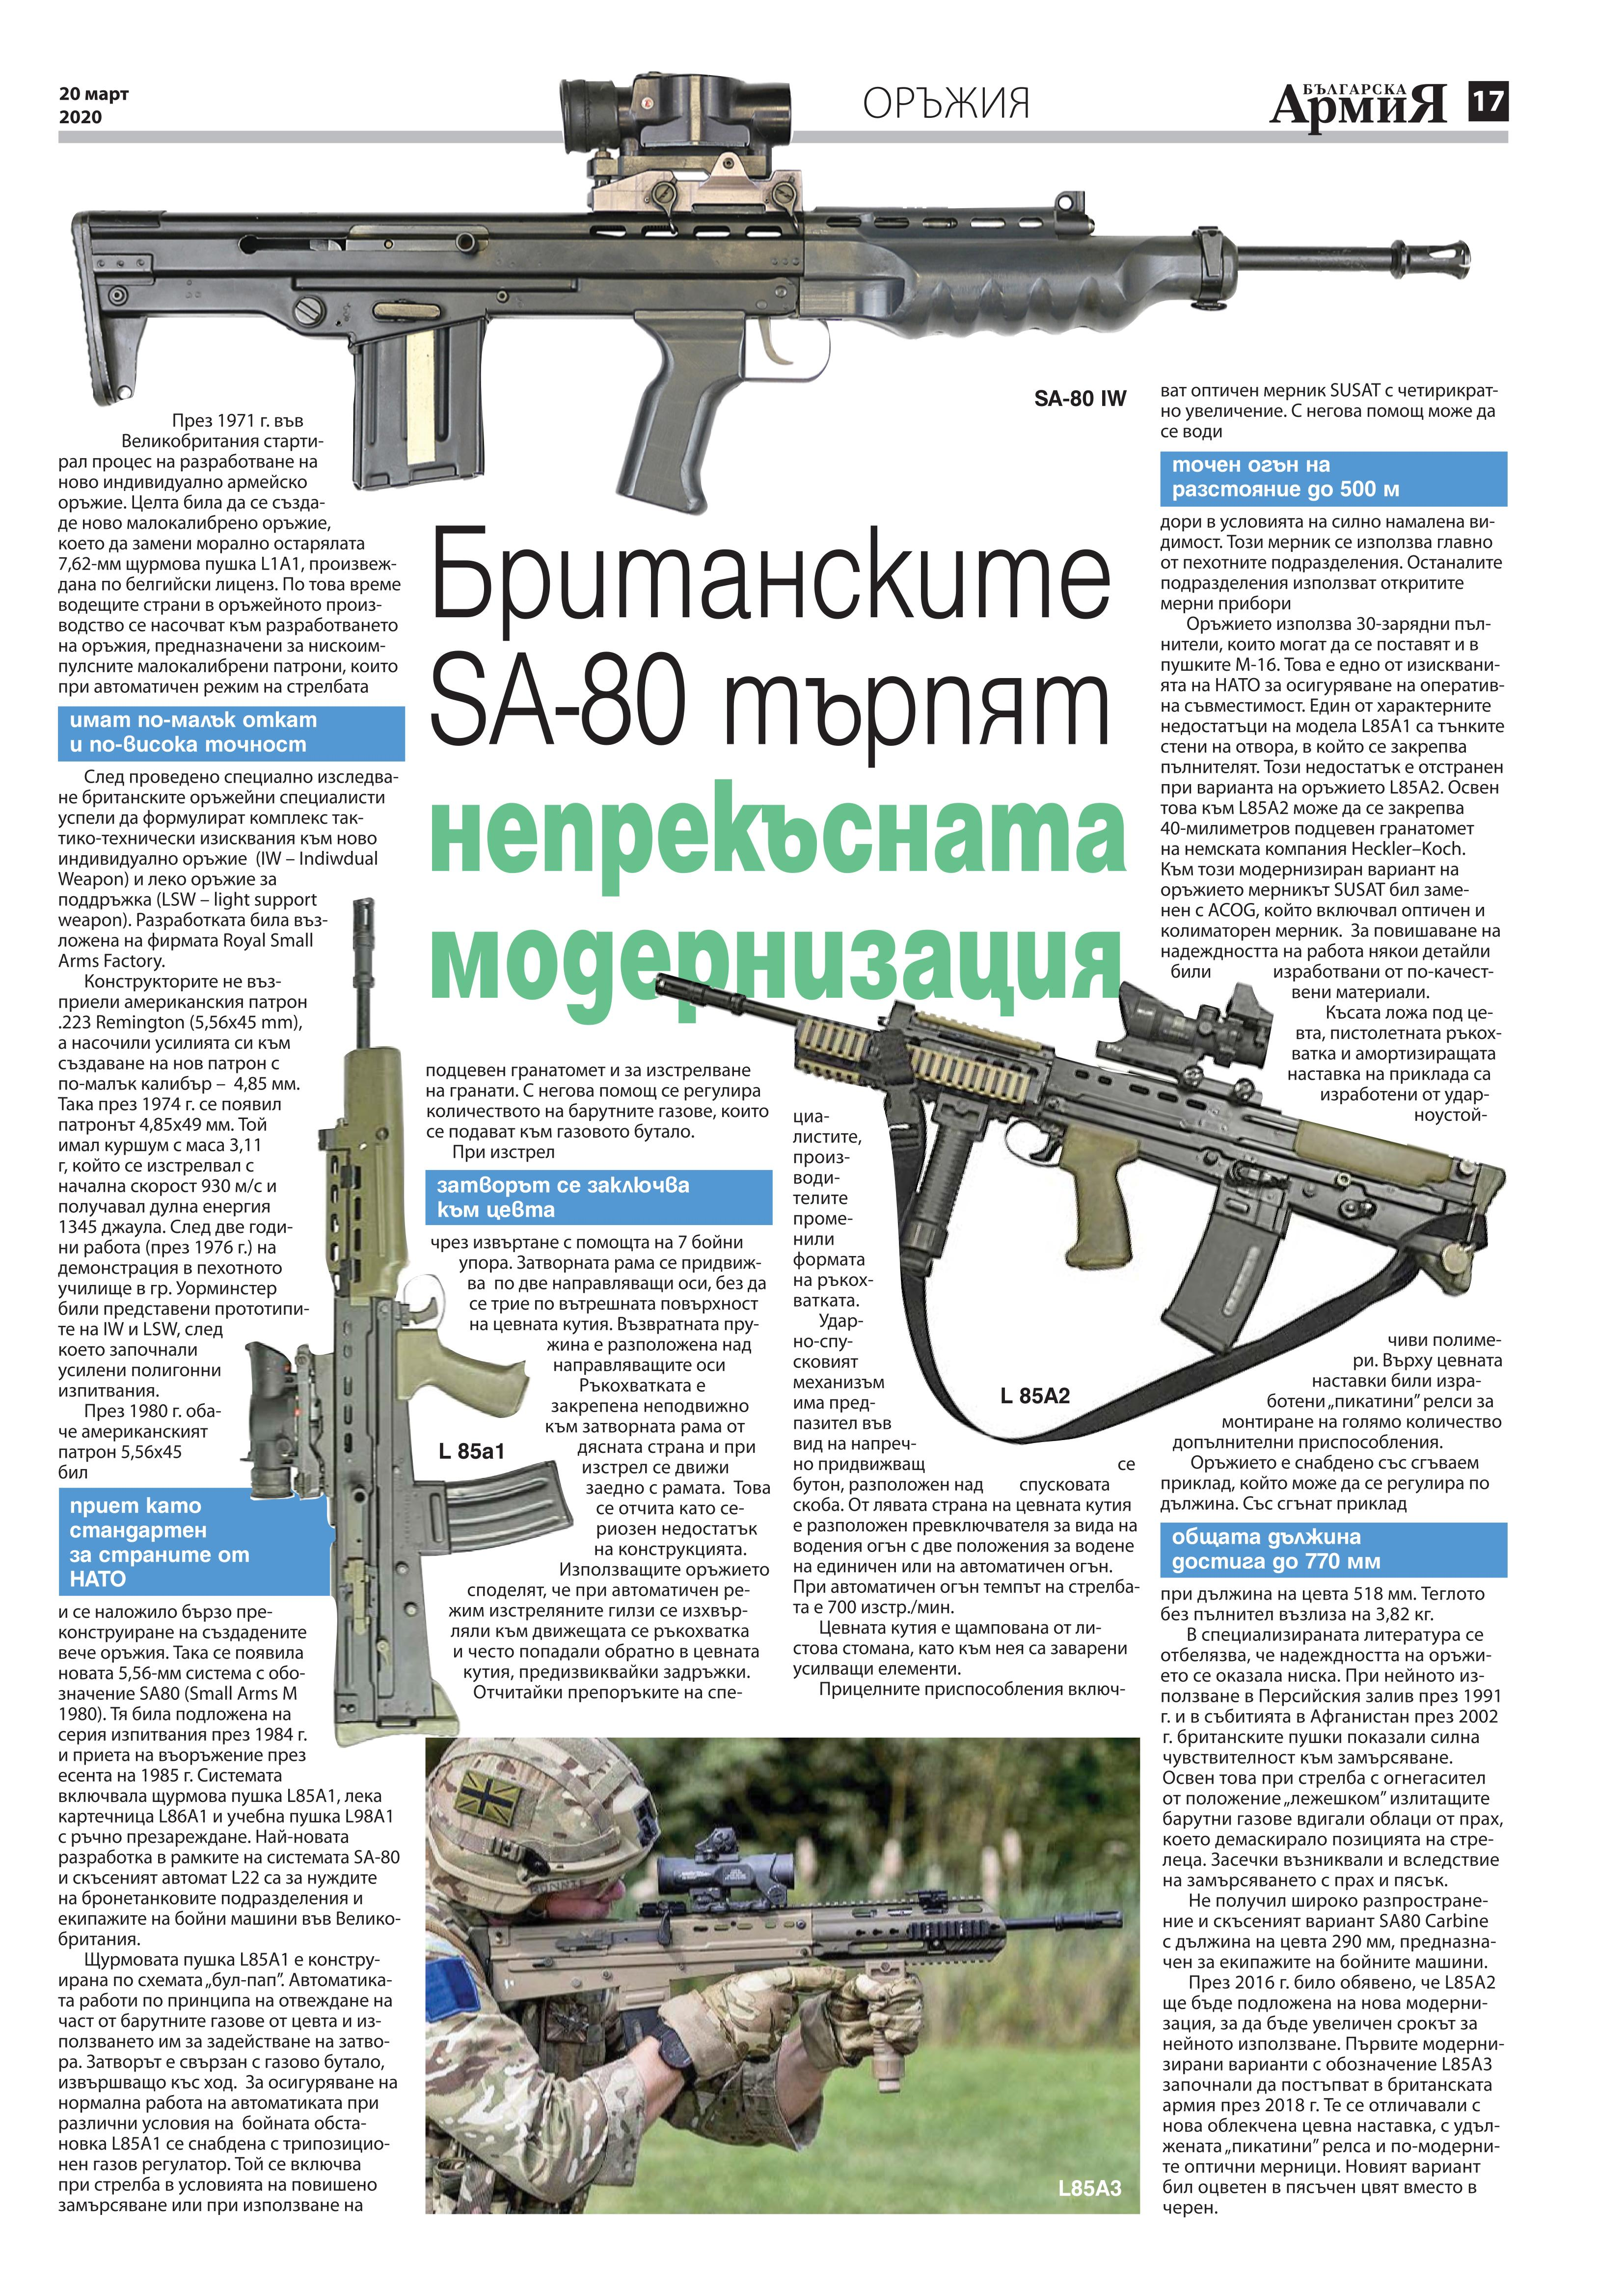 https://www.armymedia.bg/wp-content/uploads/2015/06/17.page1_-131.jpg